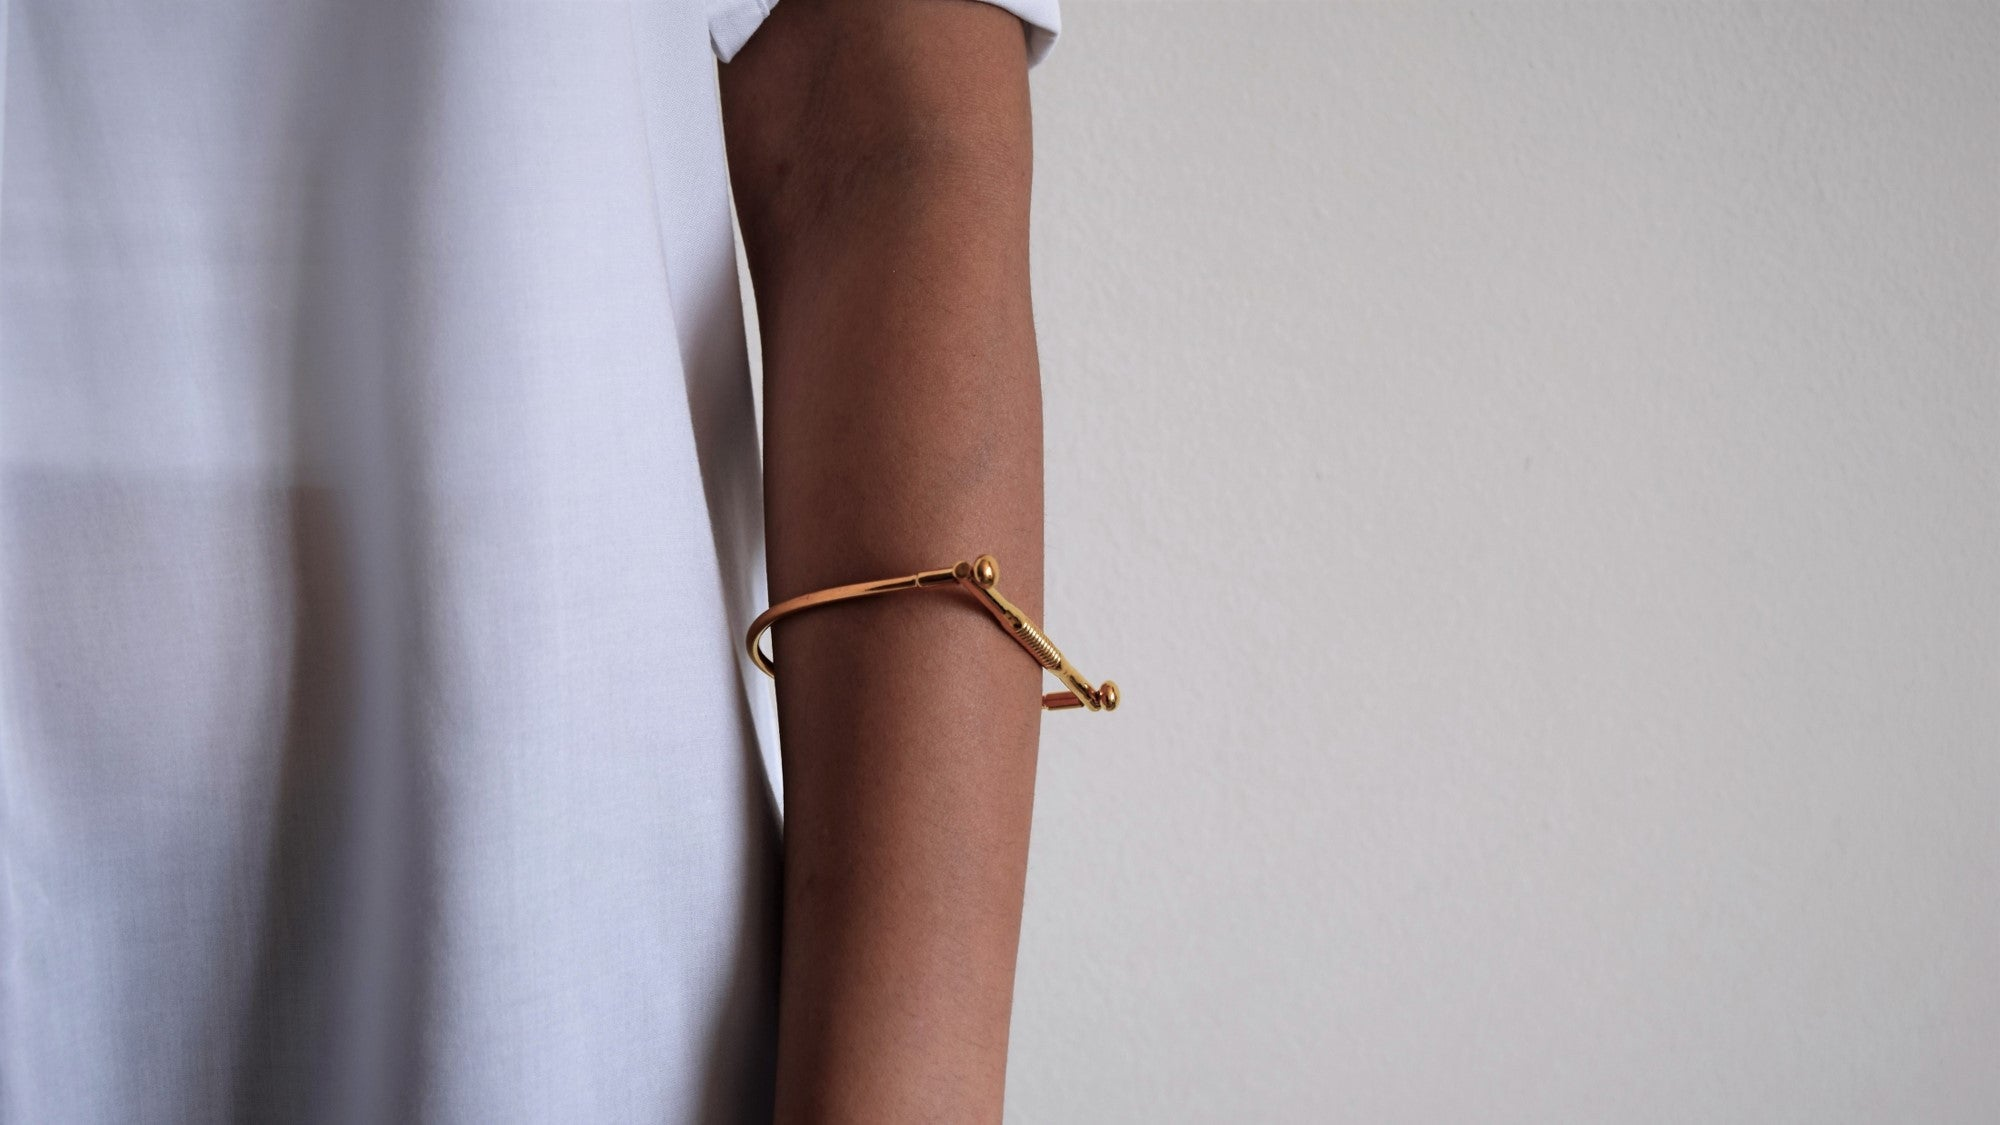 'Rotti' Cuff (1 LEFT IN STOCK)